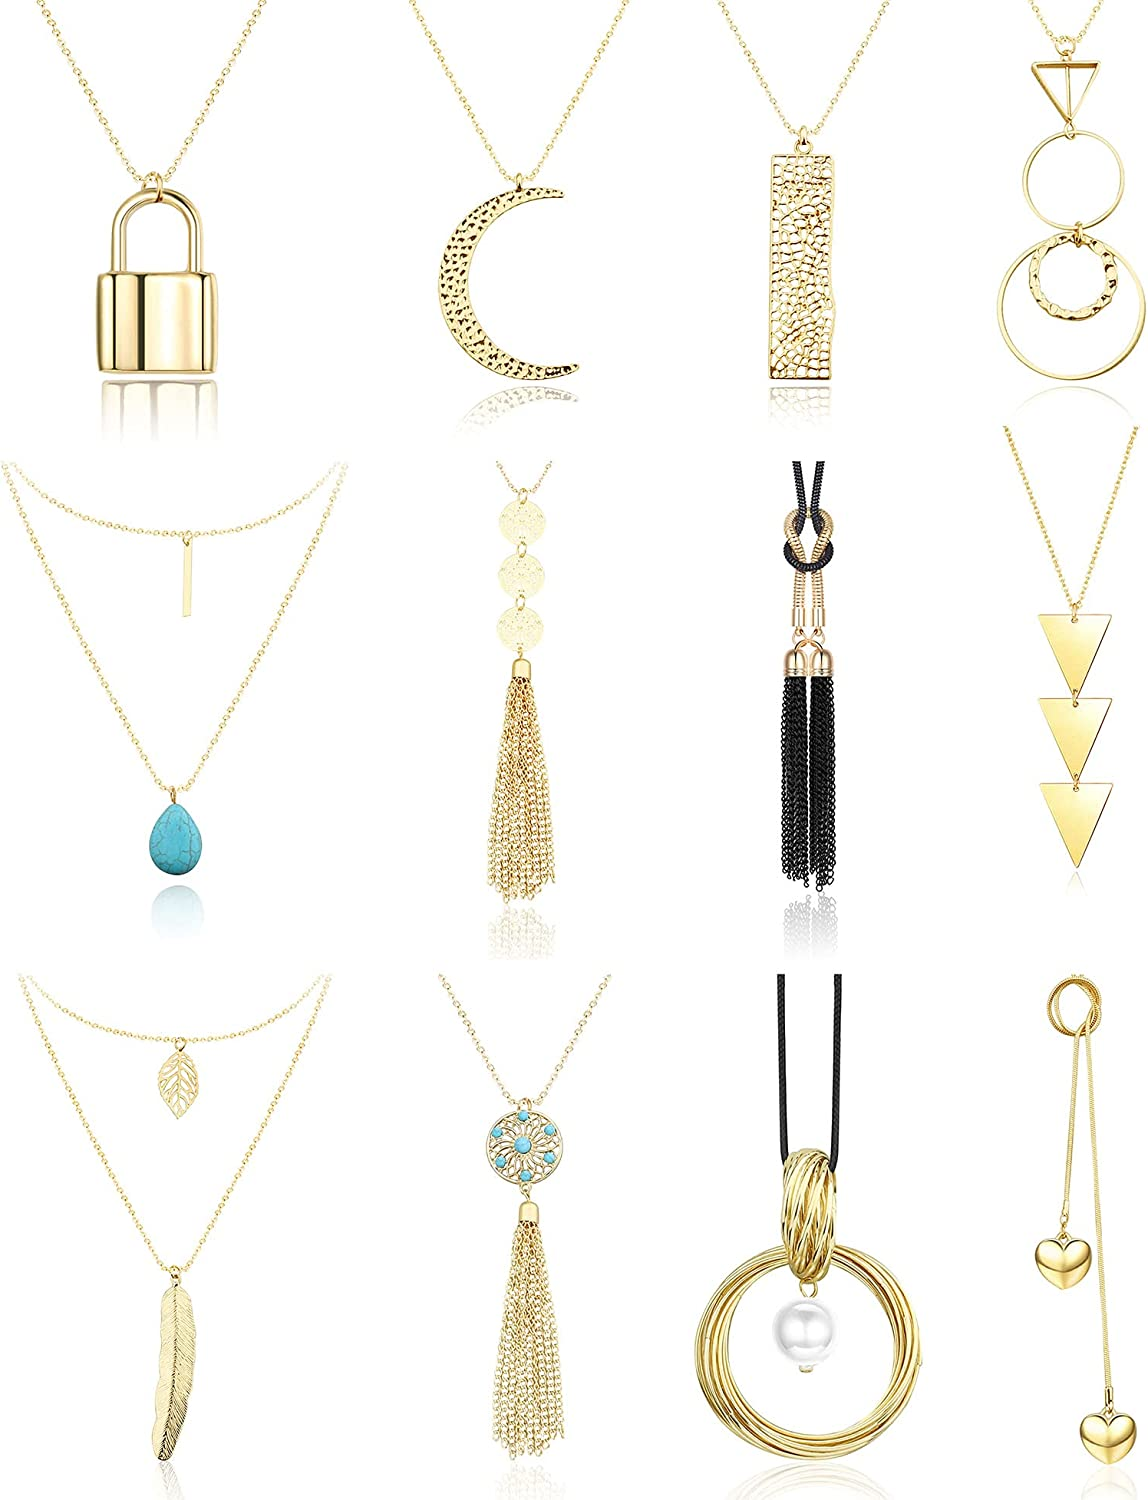 Subiceto 12 PCS Long Pendant Necklaces for Women Triangle Lock Tassel Y Necklaces Set Sweater Jewerly Accessories